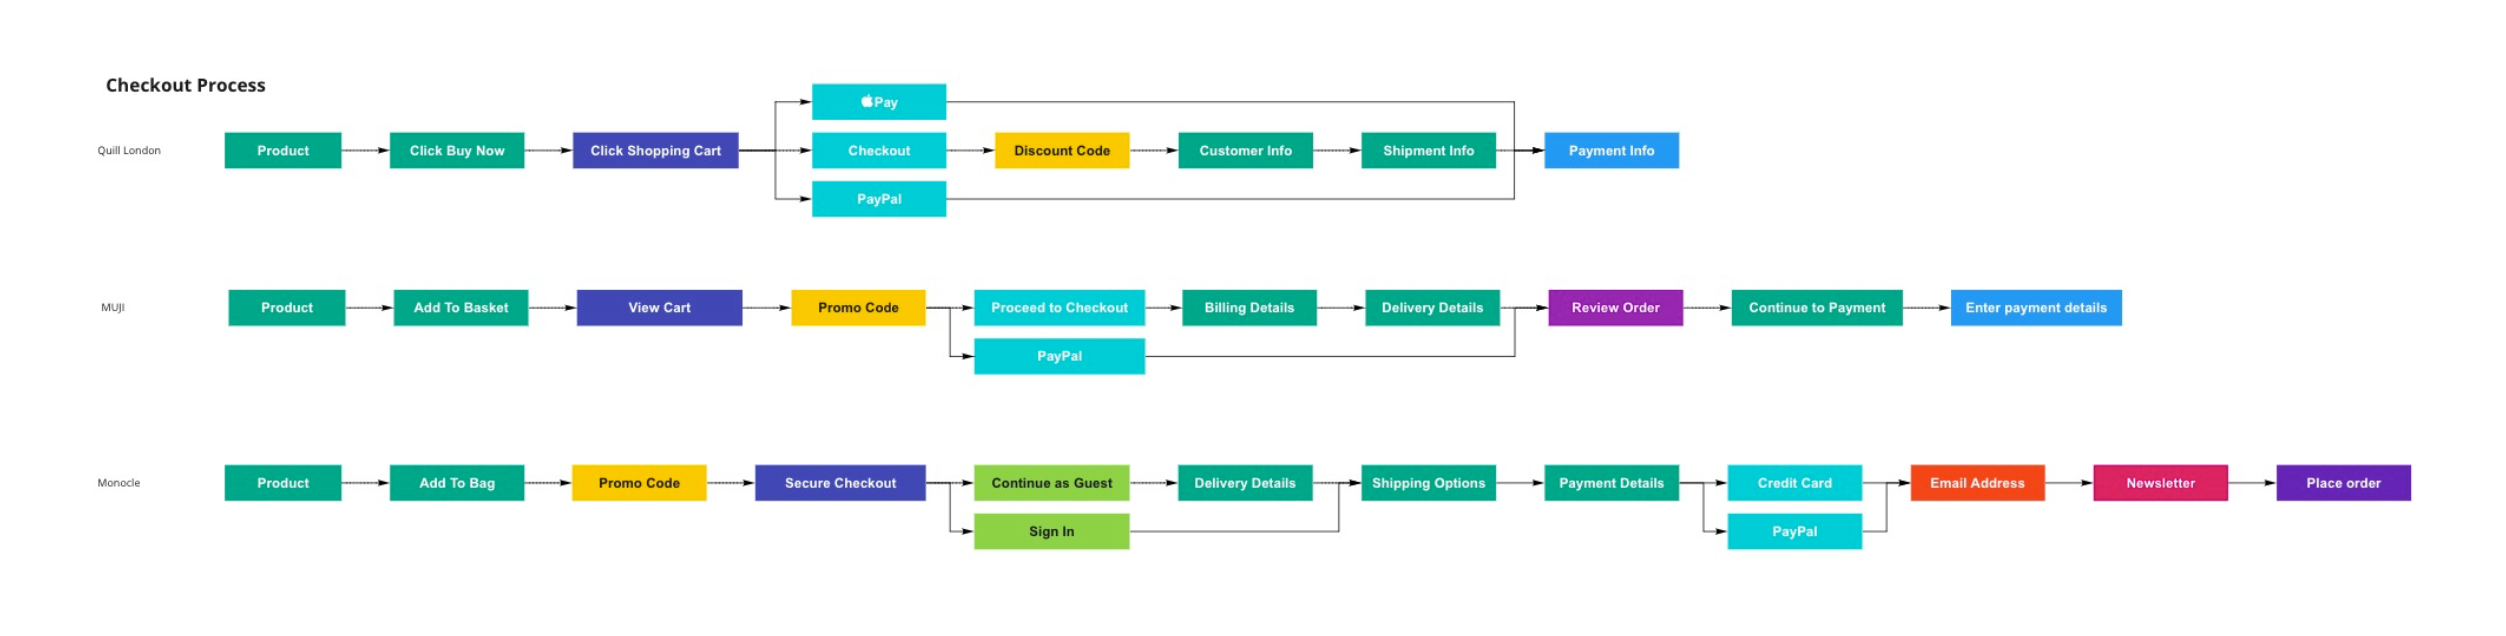 Comparing user flows (checkout process)